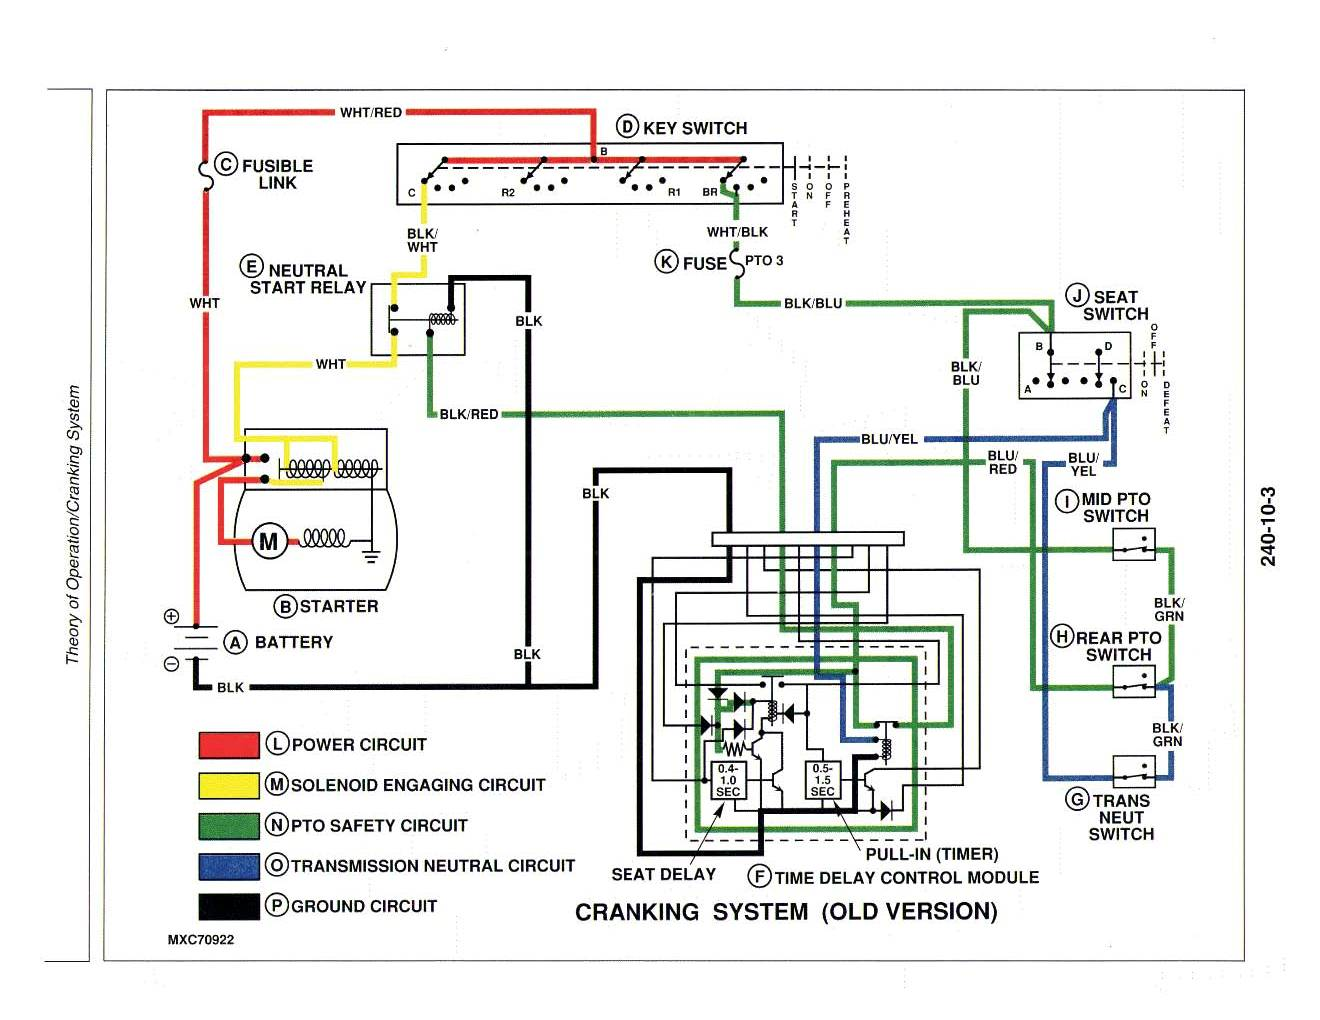 [DIAGRAM_3ER]  KE_4848] John Deere 650 Wiring Diagram | Arctic Cat Wildcat 650 Wiring Diagram |  | Isra Over Peted Redne Animo Isra Mohammedshrine Librar Wiring 101